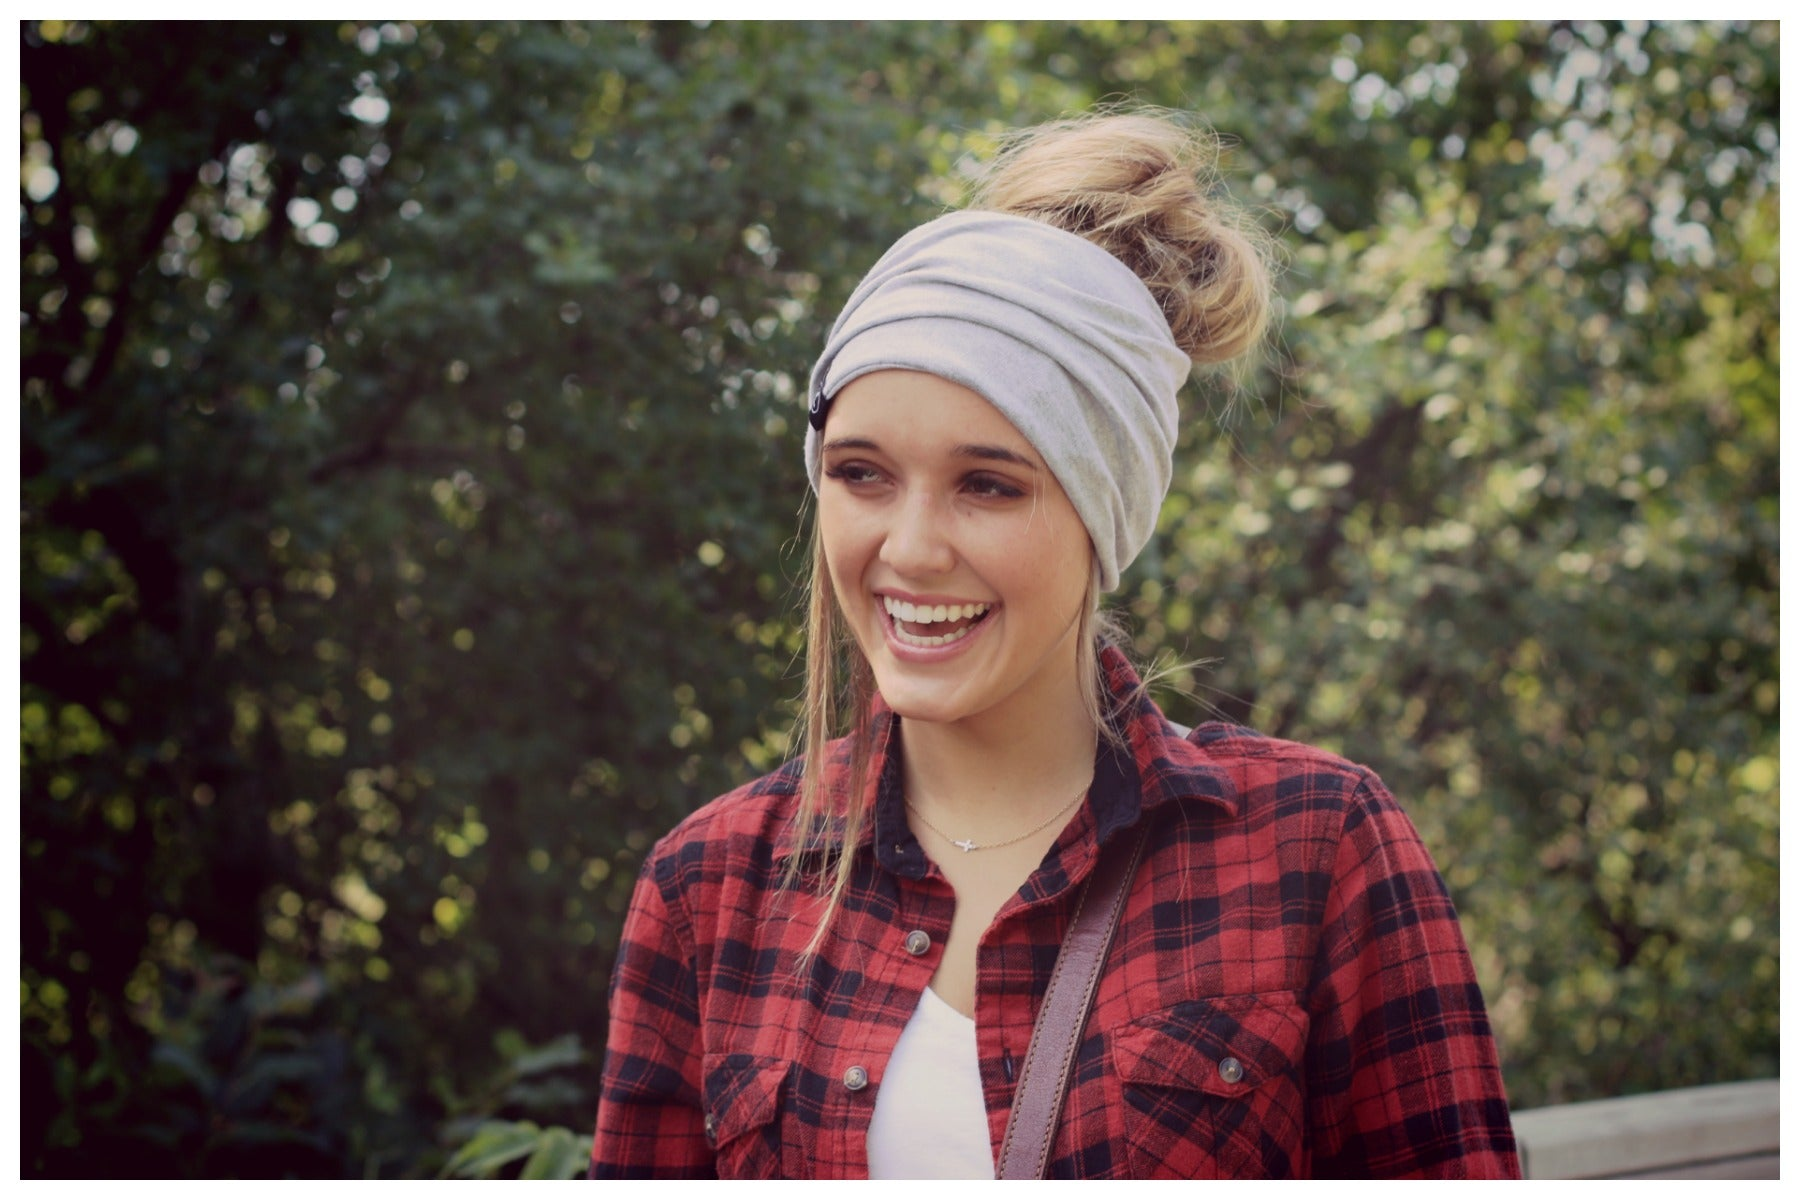 Pretty Simple - Light Gray Peek-a-Boo Beanie